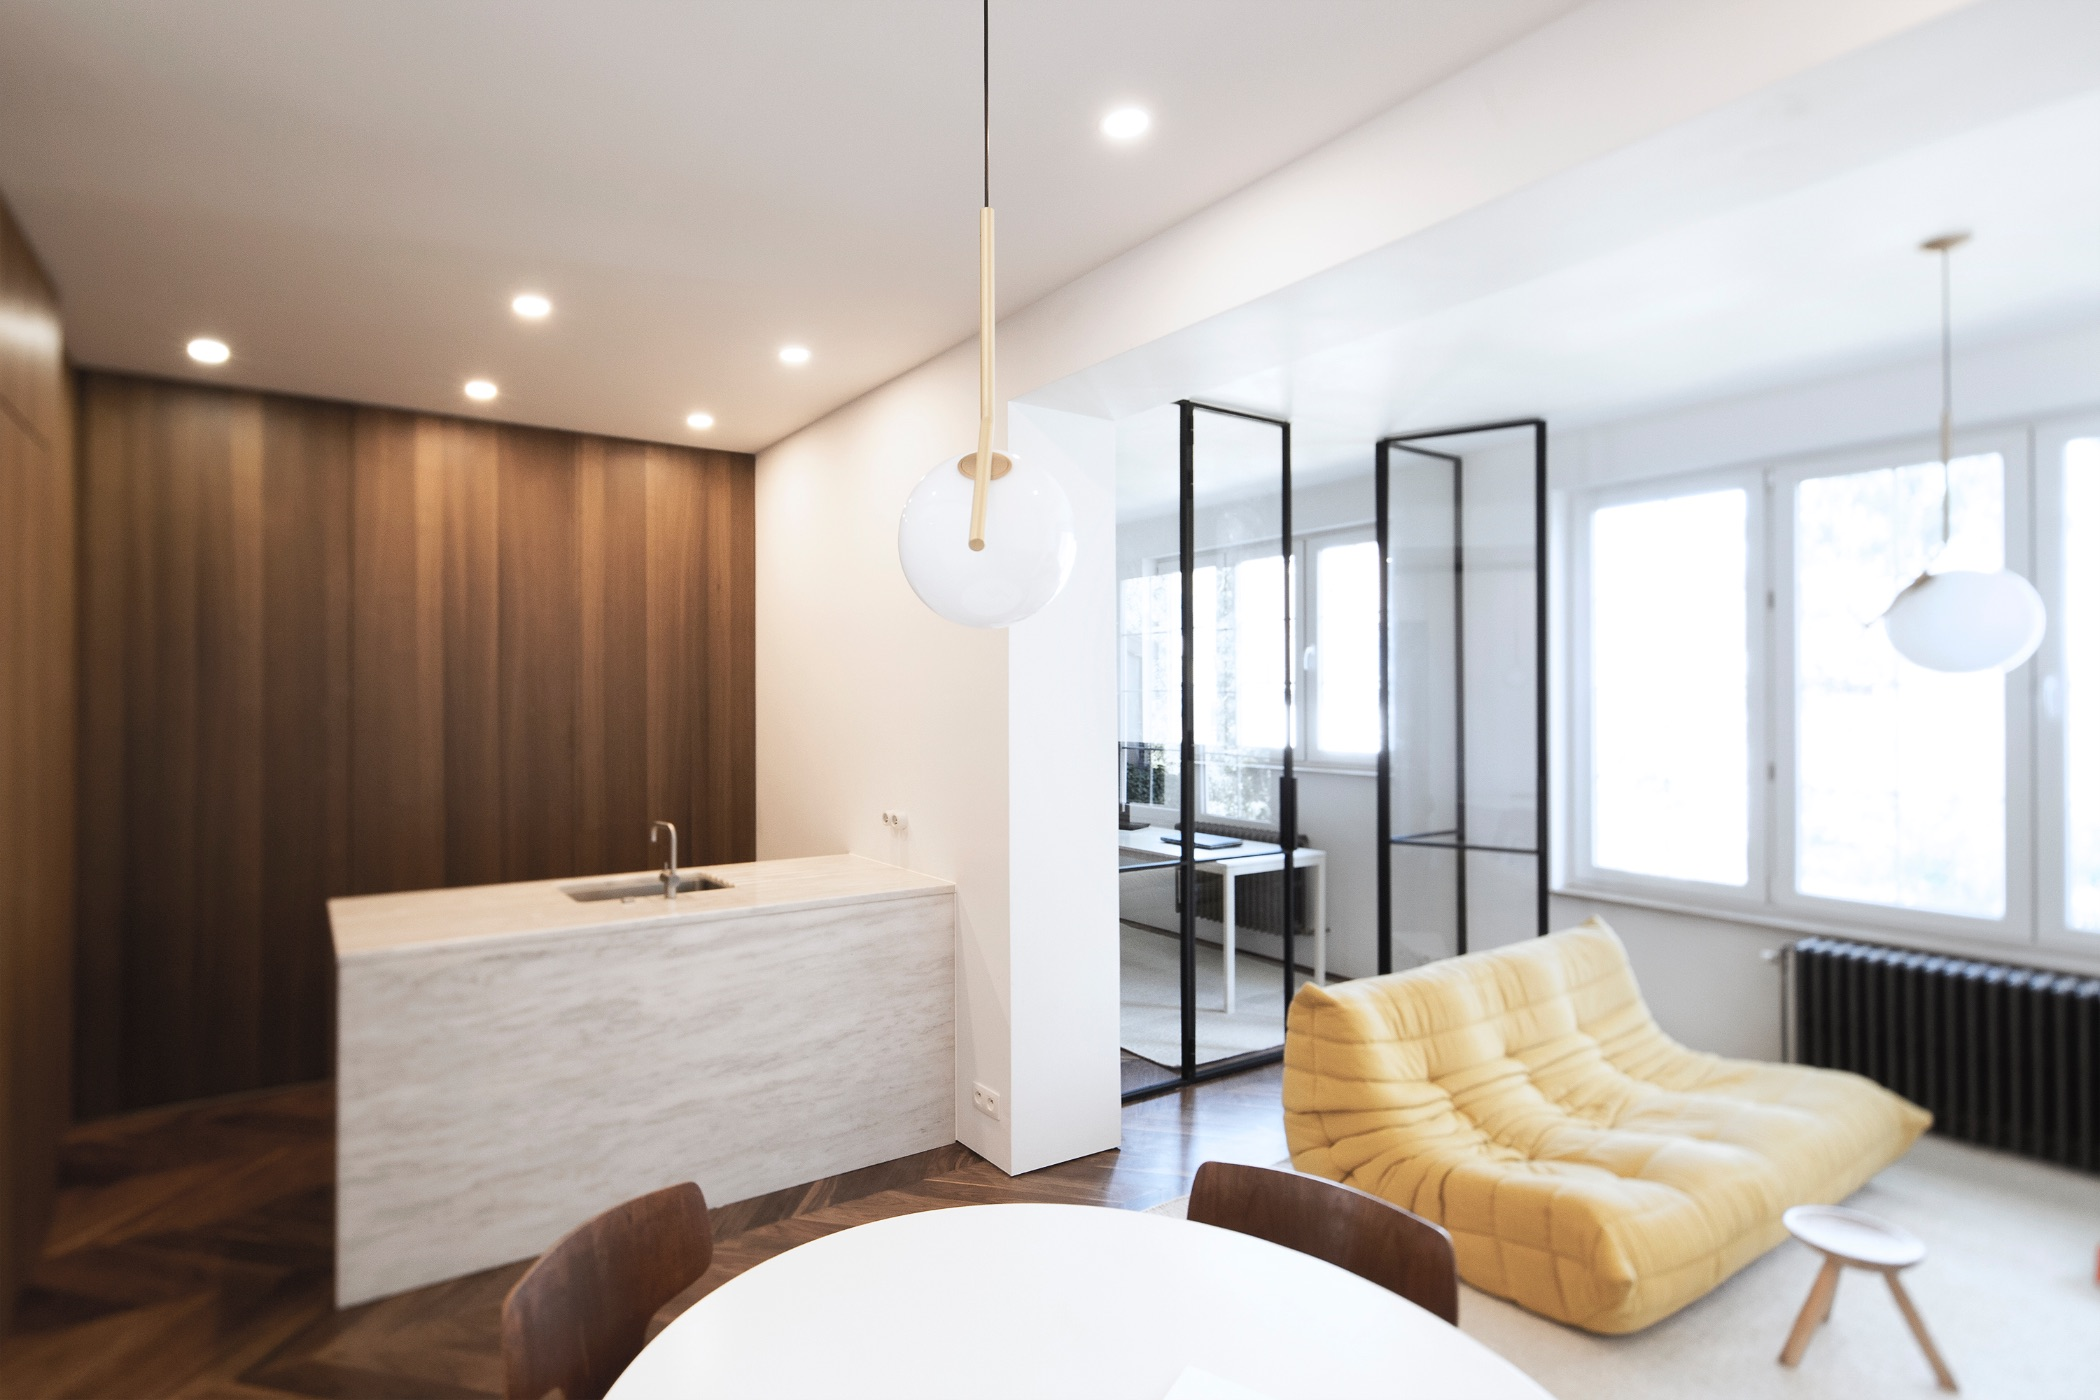 The transformation of an Albert Dumont-designed apartment into a ...